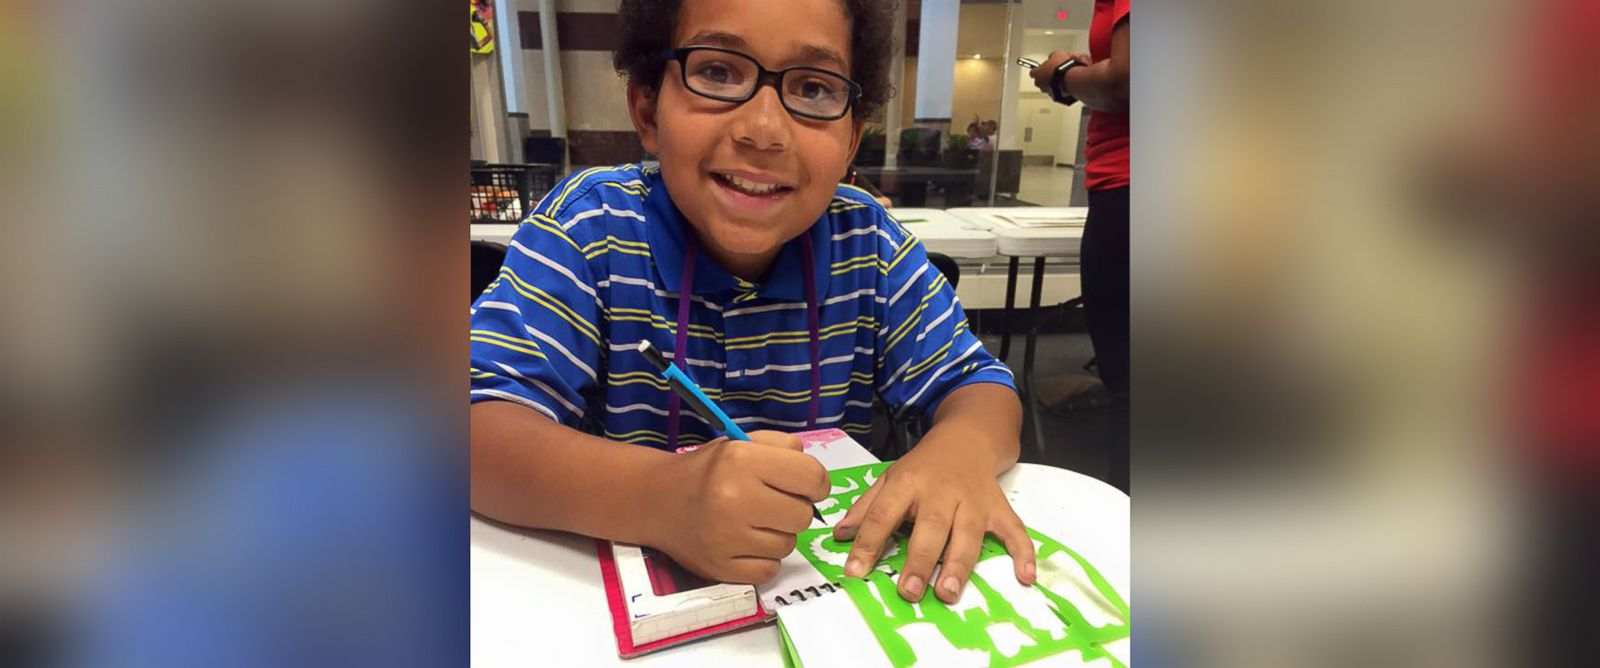 PHOTO: Xavier Elliot, 10, has started a project where he creates clothes for homeless kids.